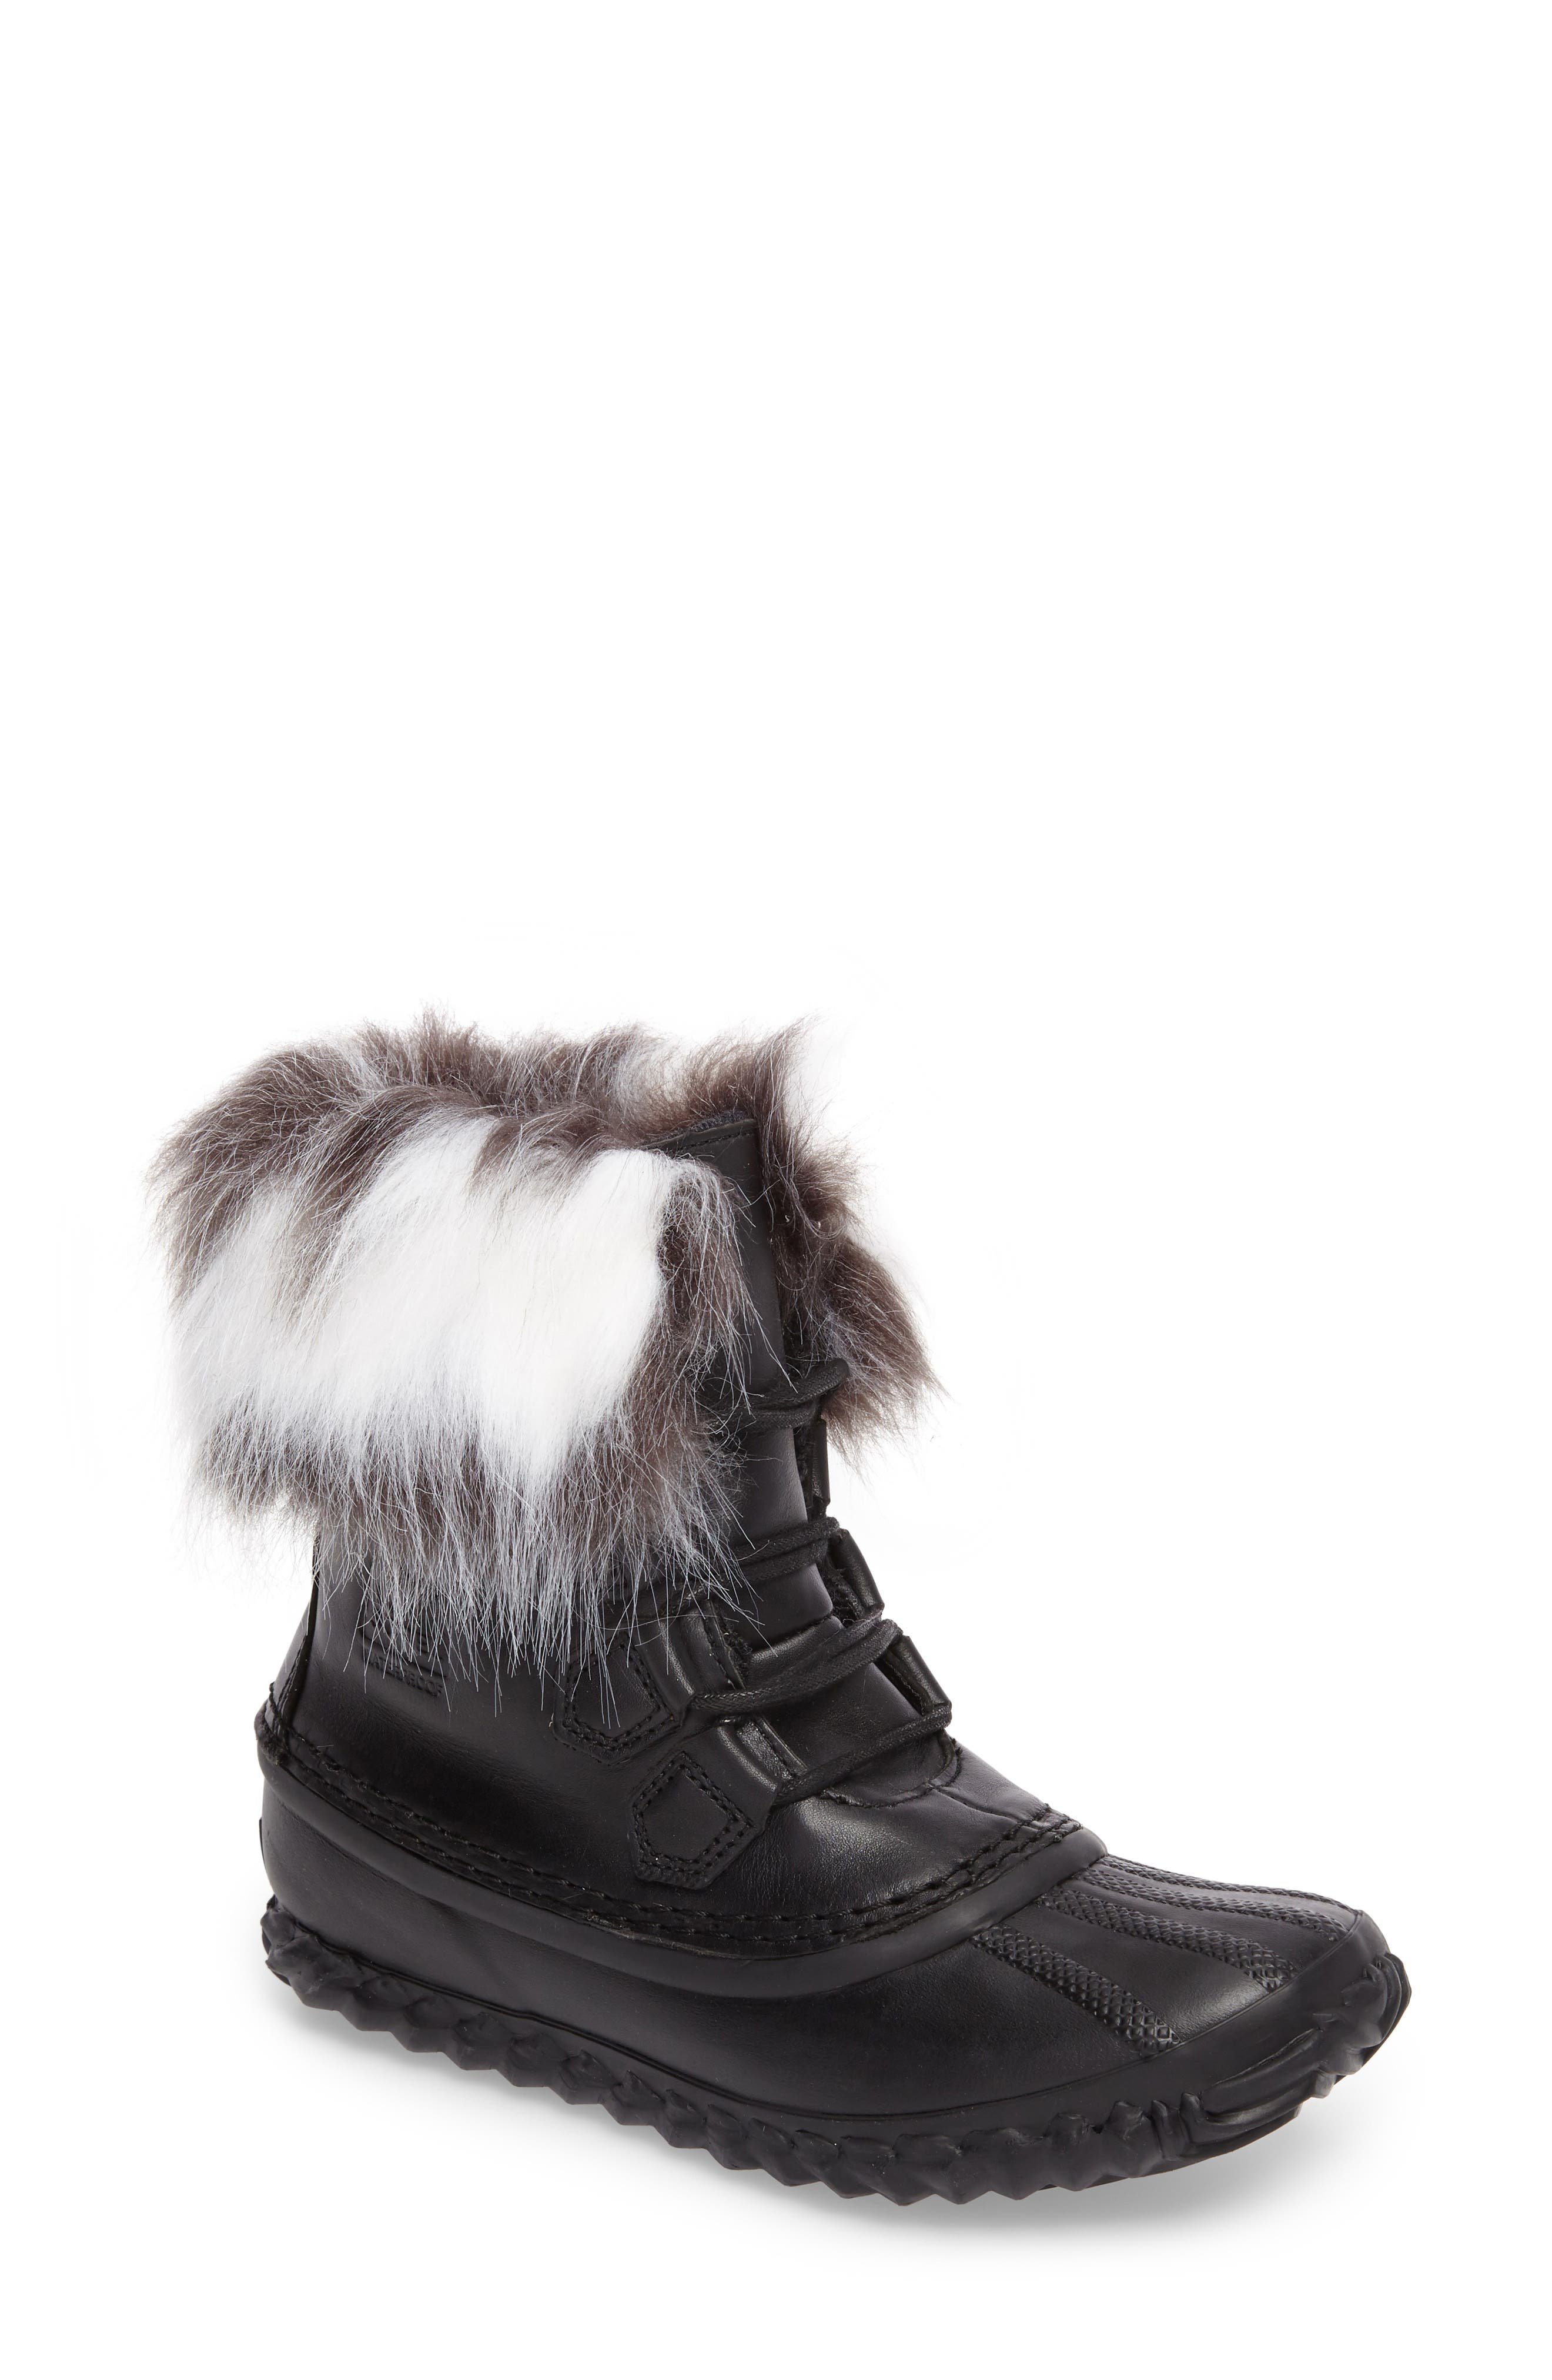 Out 'N About Waterproof Luxe Bootie,                             Main thumbnail 1, color,                             010